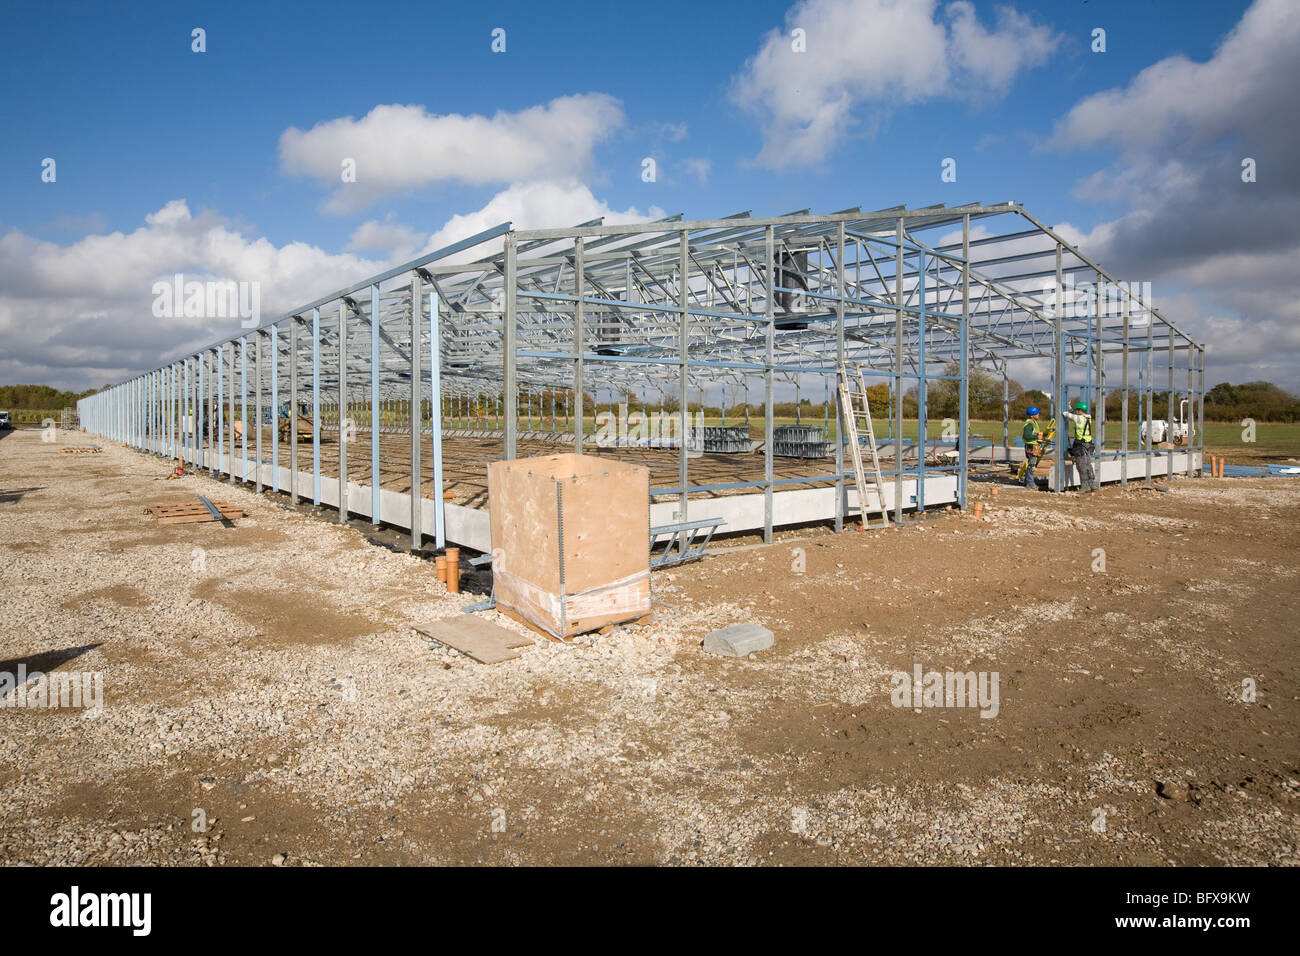 New Poultry Shed Being Constructed - Stock Image